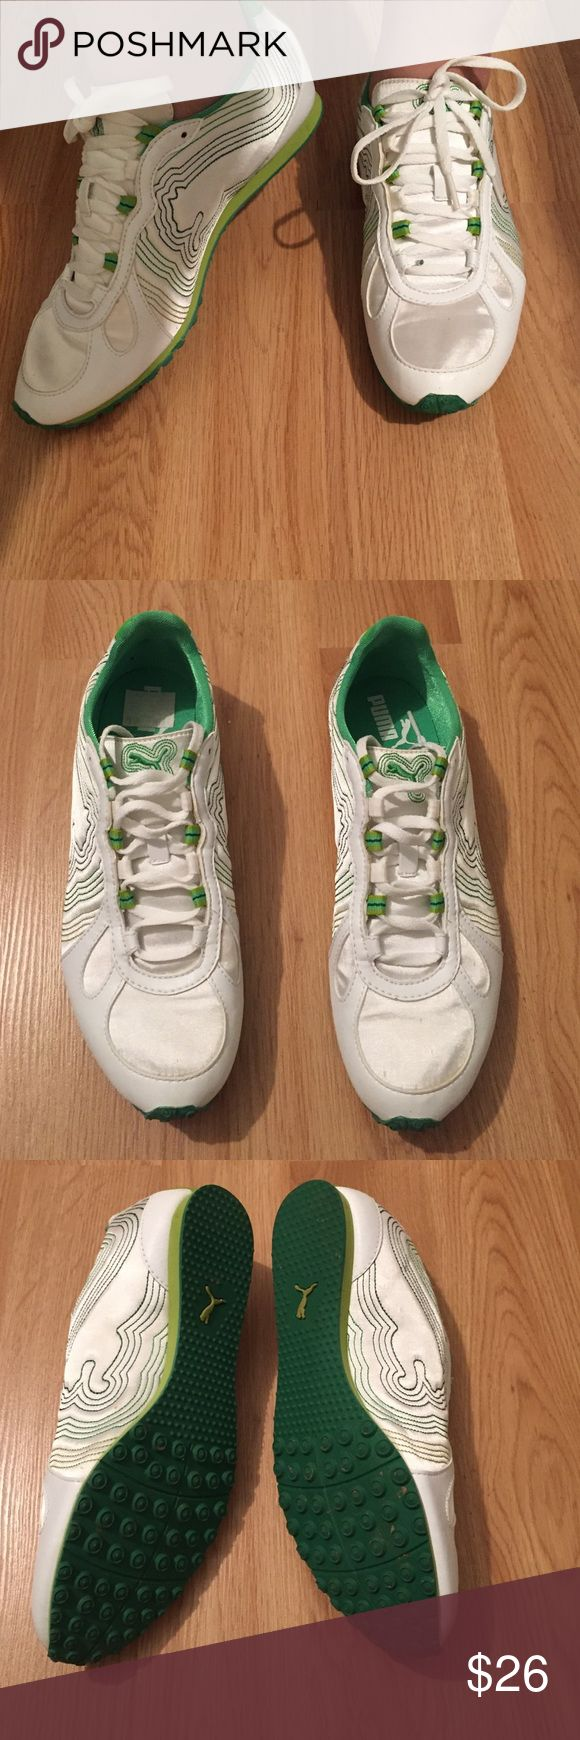 Puma sneakers ❤️ Puma sneakers worn only once. Excellent condition!! Rubber sole. Still has it's original price label. Puma Shoes Sneakers